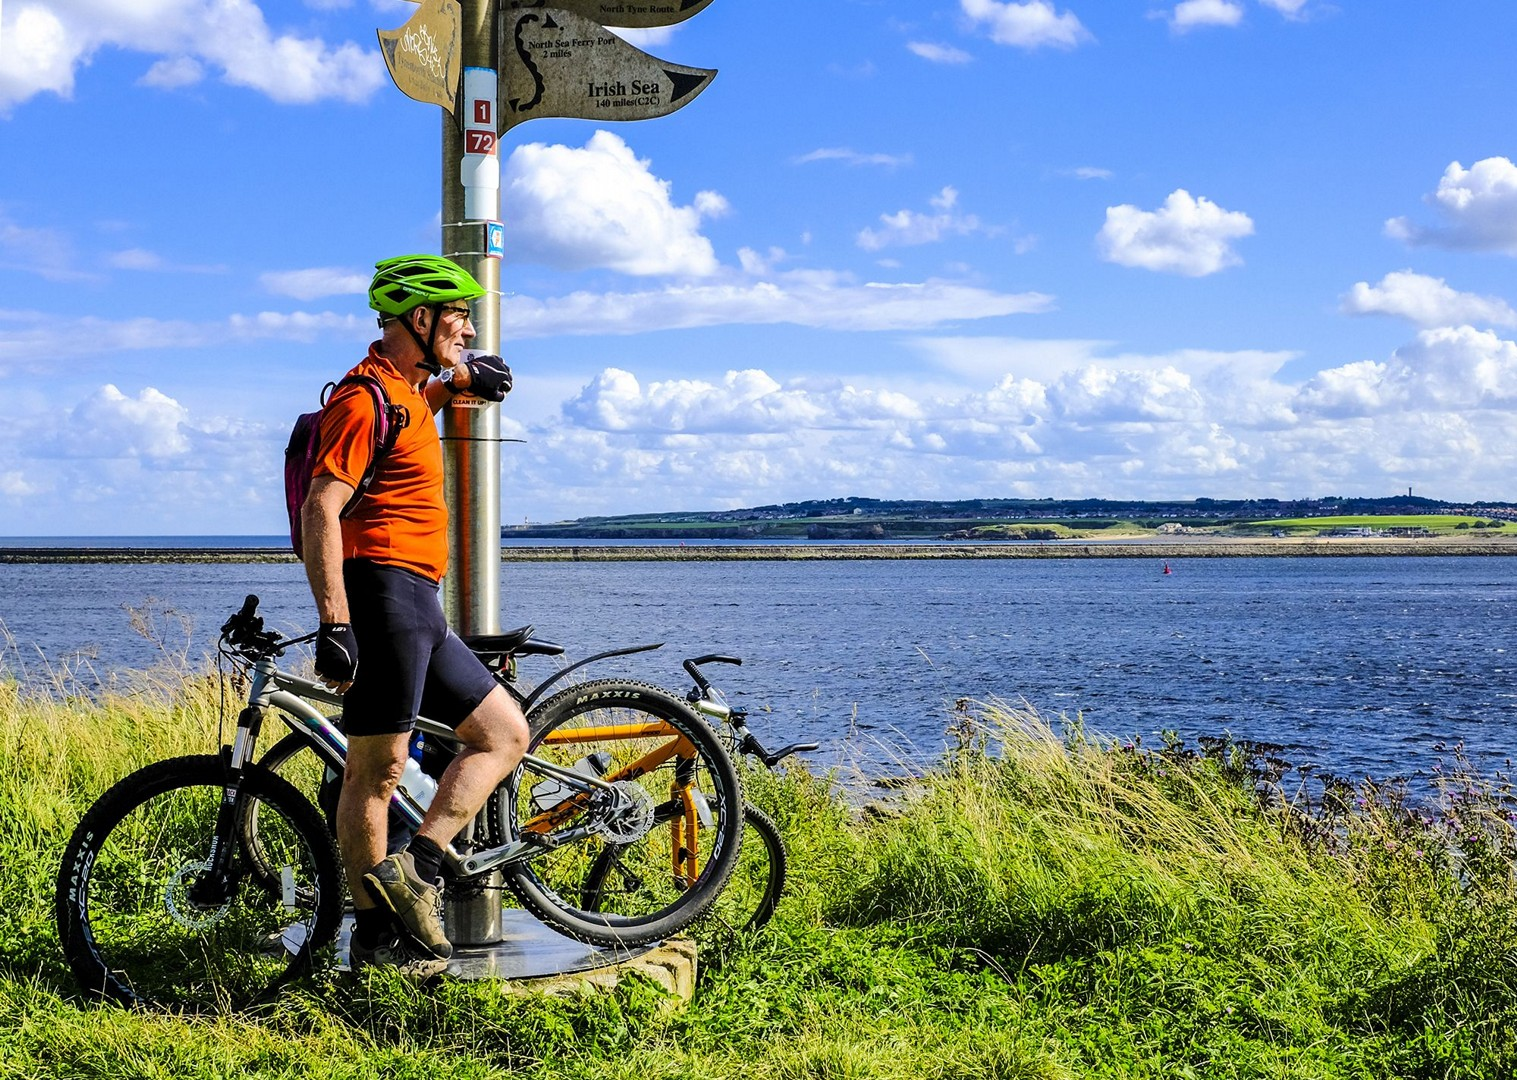 coast-to-coast-self-guided-5-day-holiday.jpg - UK - C2C - Coast to Coast 5 Days Cycling - Self-Guided Leisure Cycling Holiday - Leisure Cycling